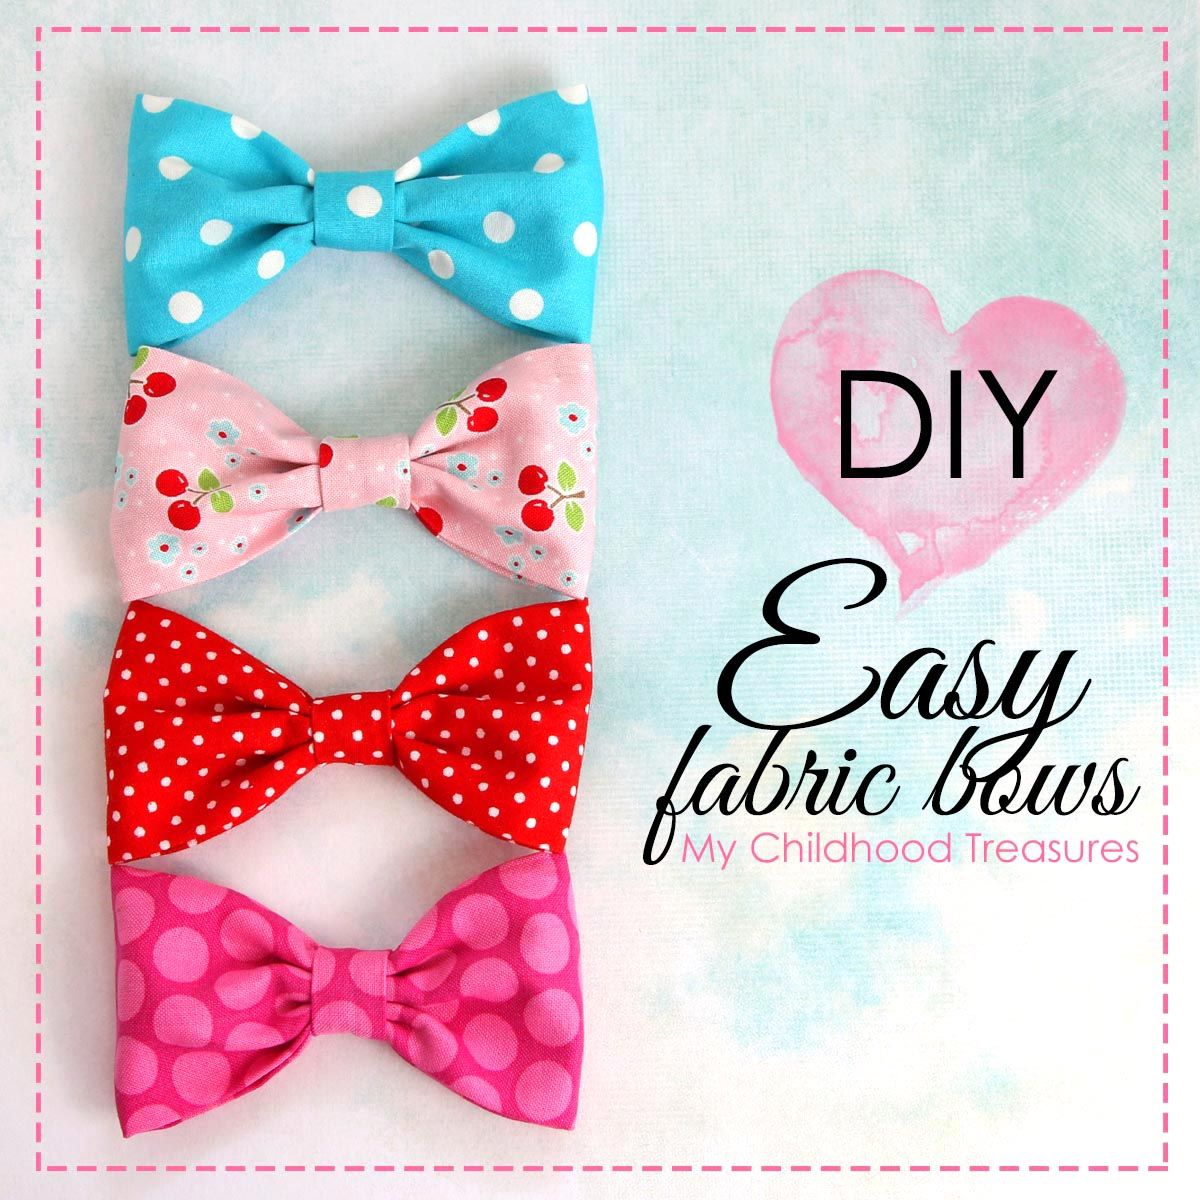 How to Make FABRIC BOWS: DIY Fabric Bows | TREASURIE